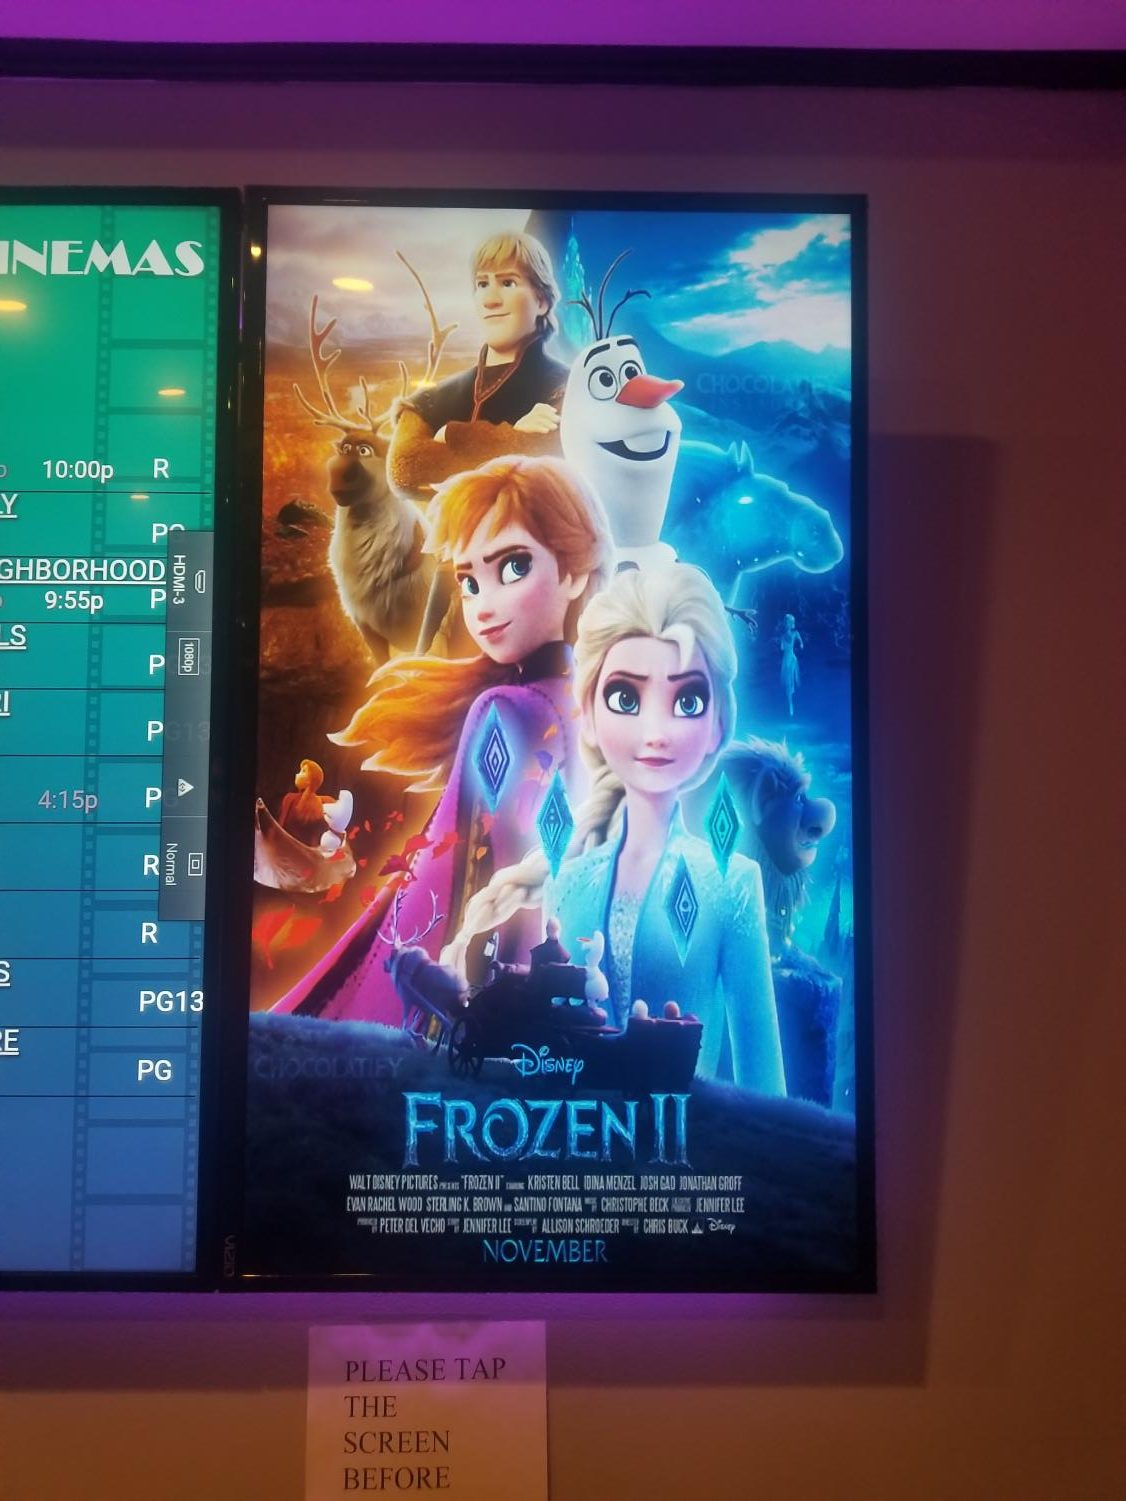 The movie poster at the theater.